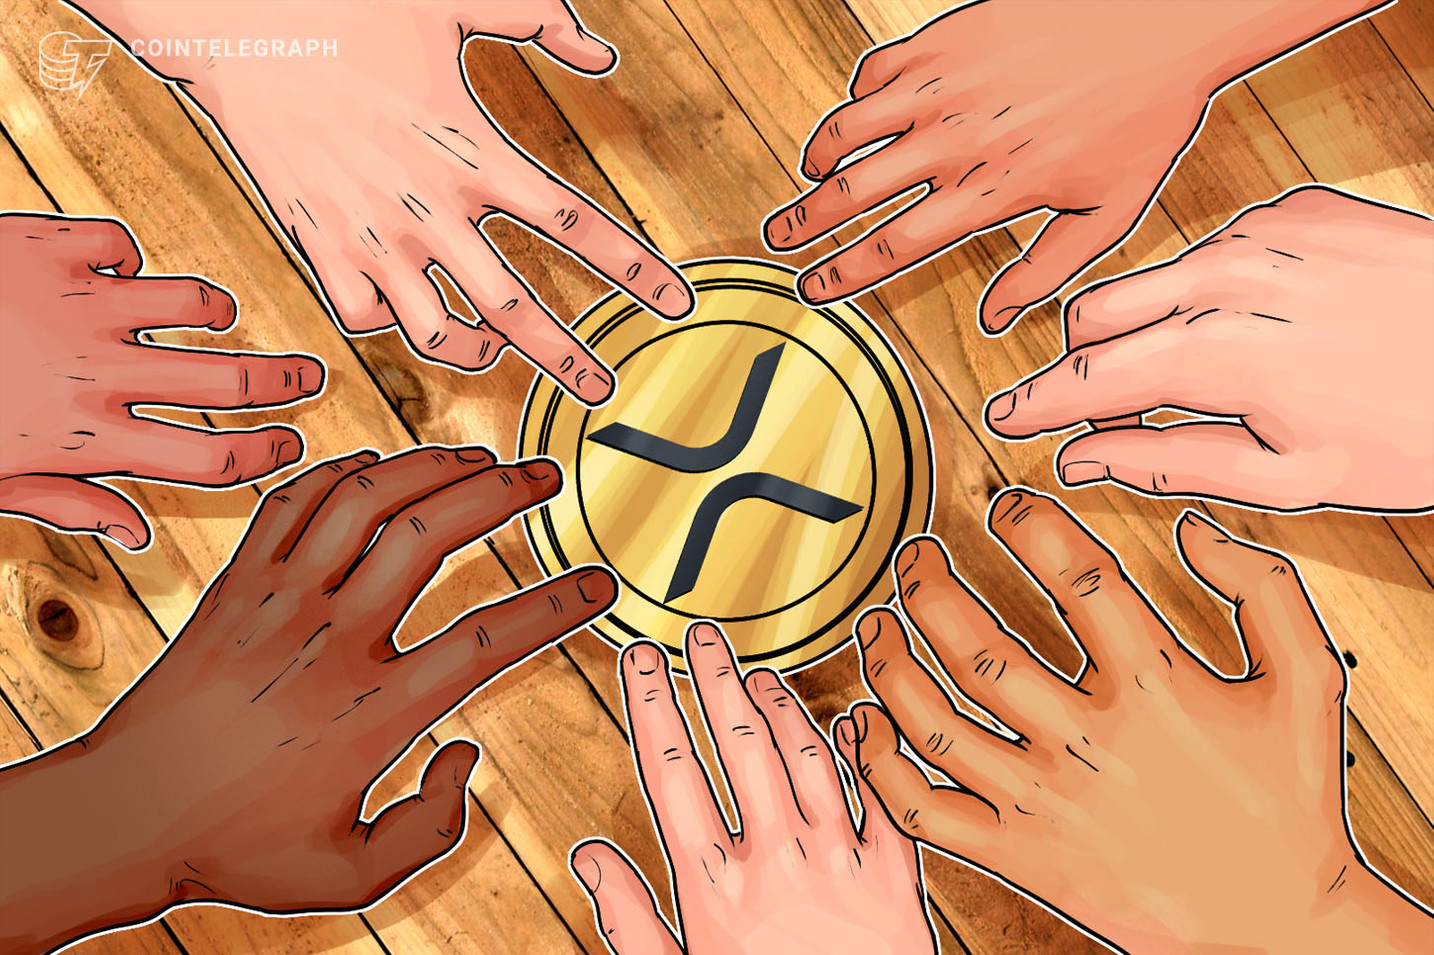 Ripple's Fundraising Arm Xpring Invests in XRP Community Developer's Lab